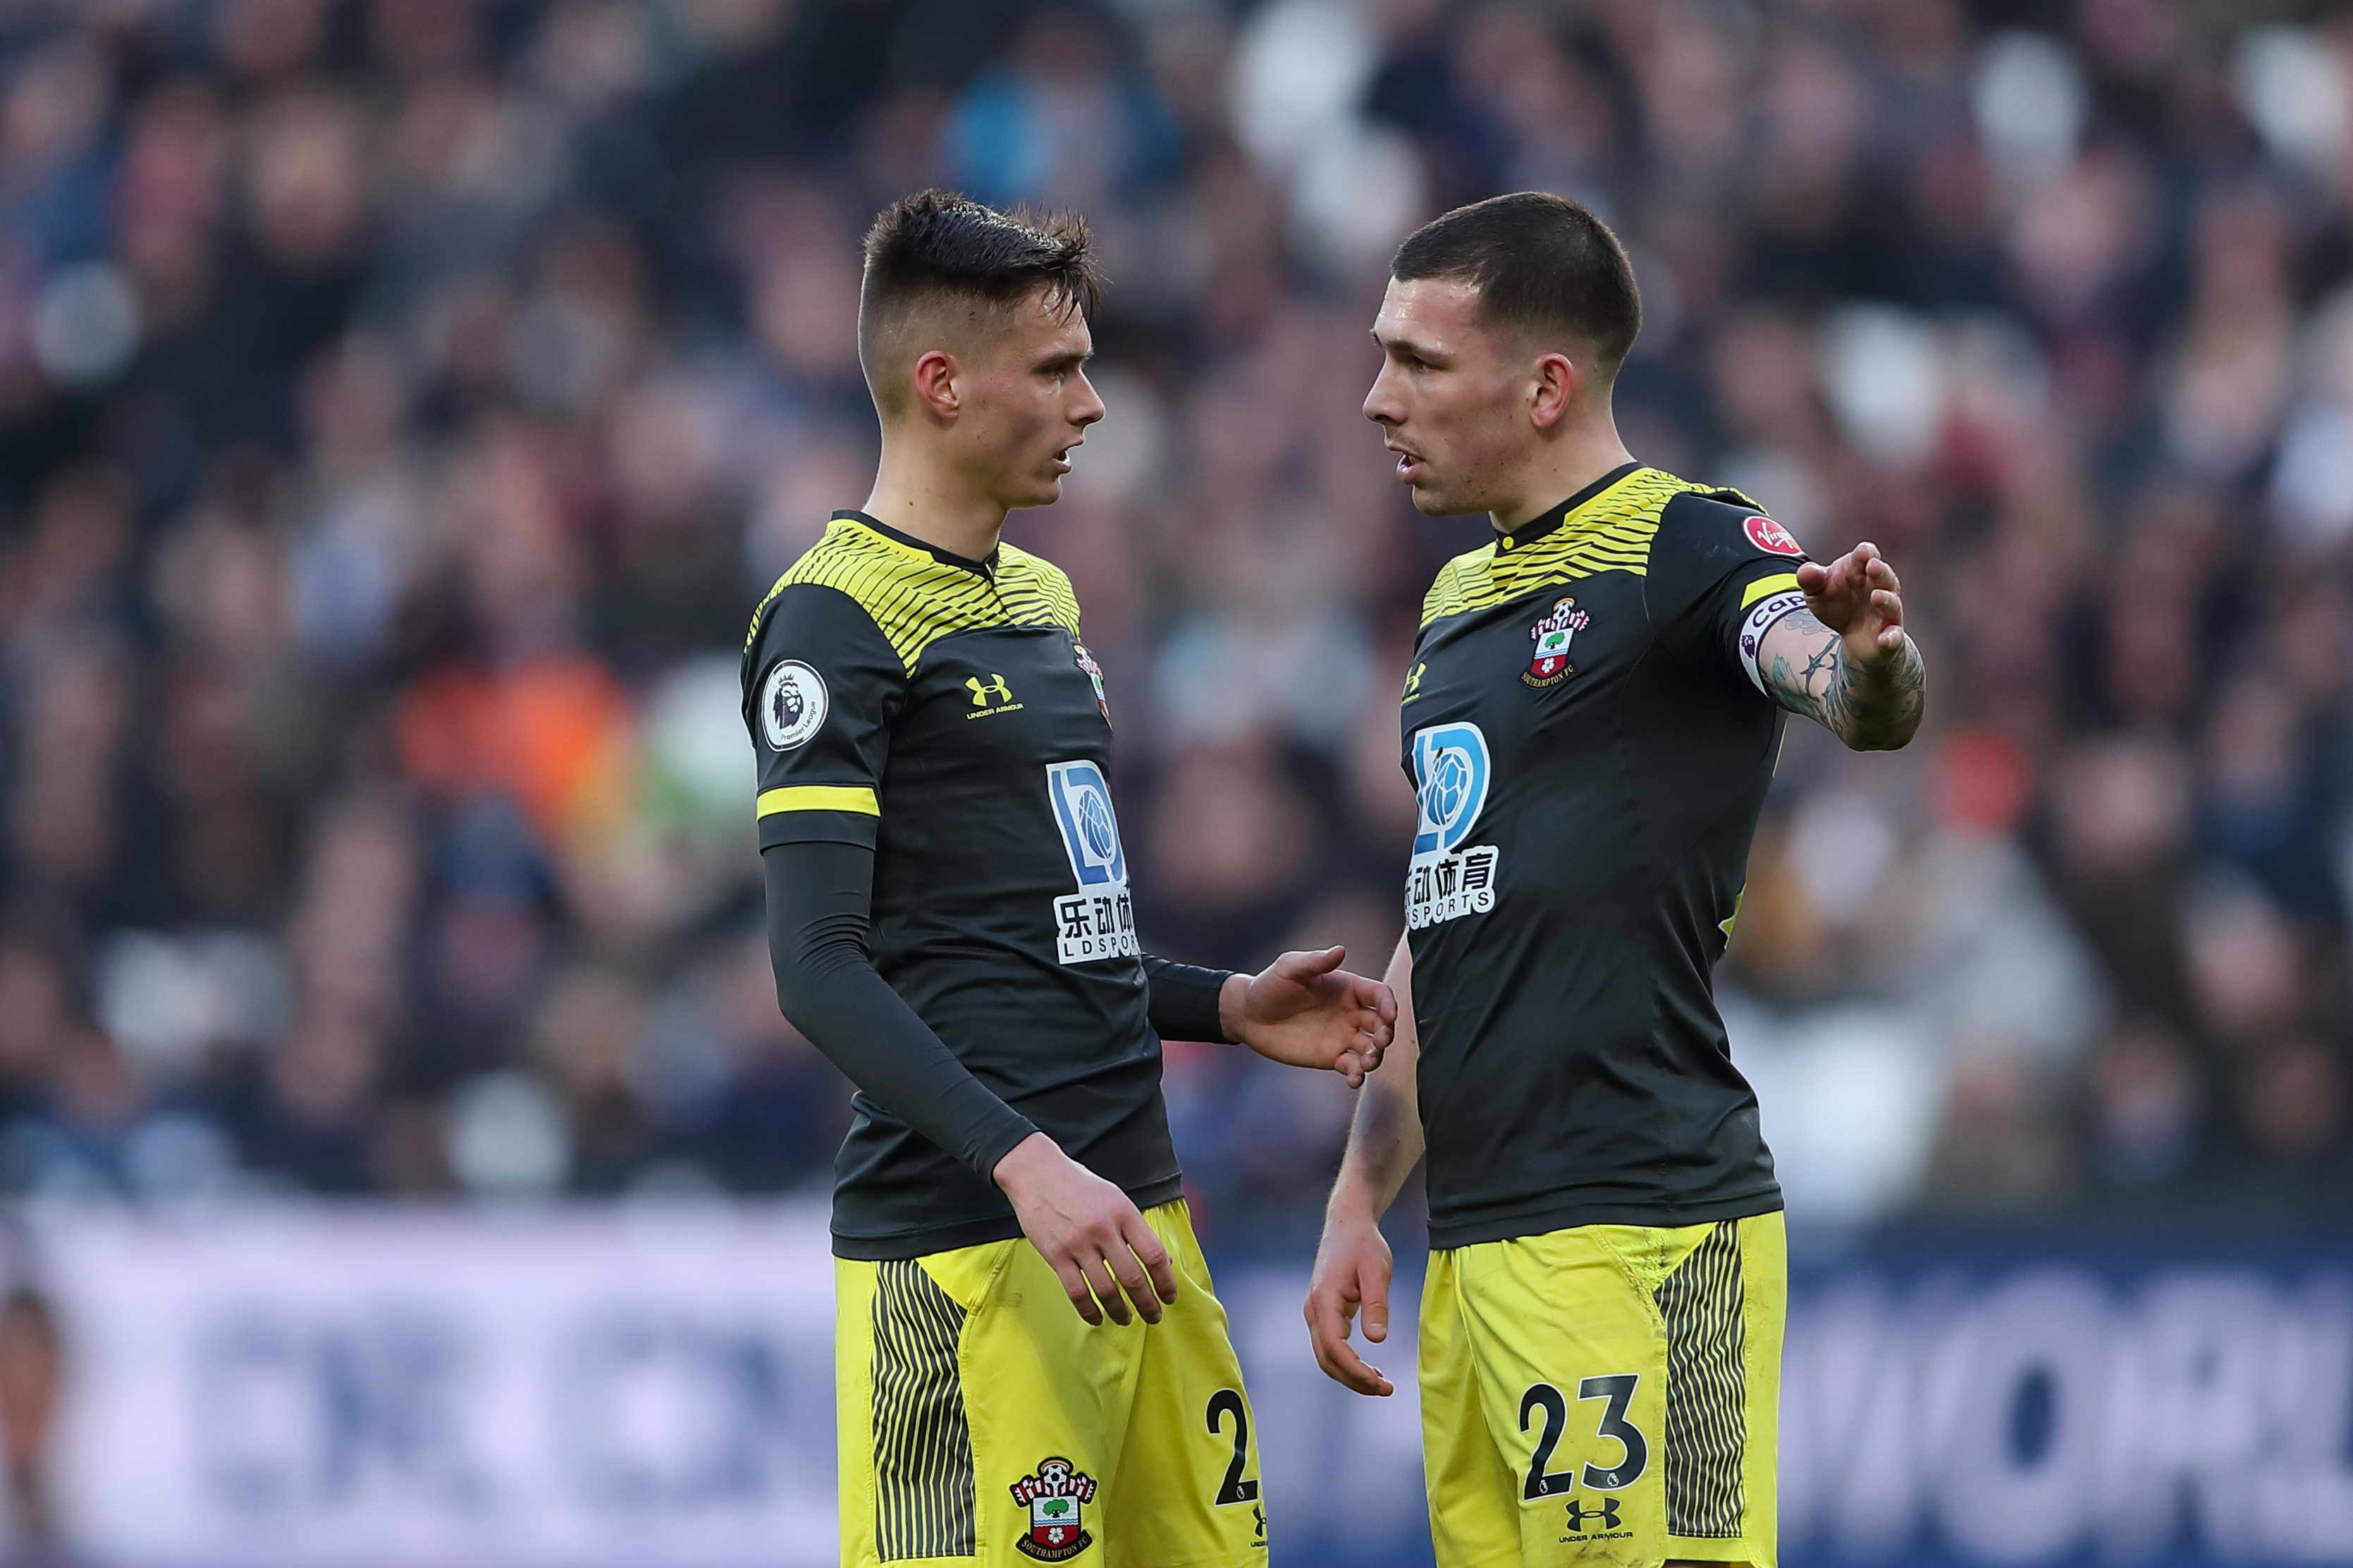 Southampton captain Pierre-Emil Hojbjerg could be leaving Saints after rejecting new contract